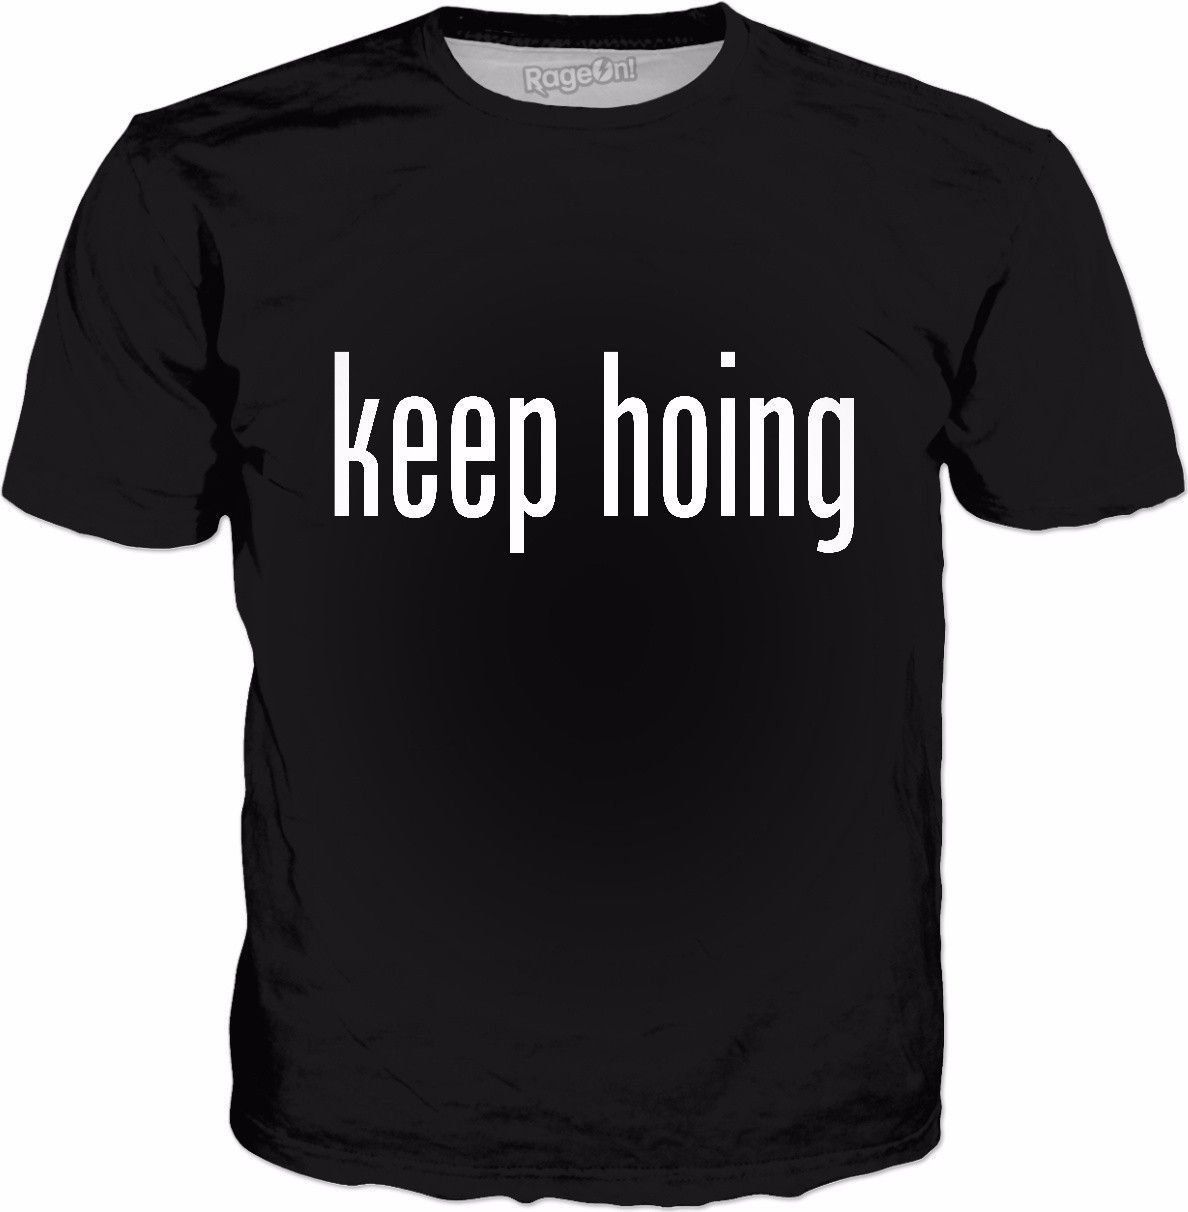 Keep Hoing Classic Black T-Shirt Visit ShirtStoreUSA.com for this and TONS of others!